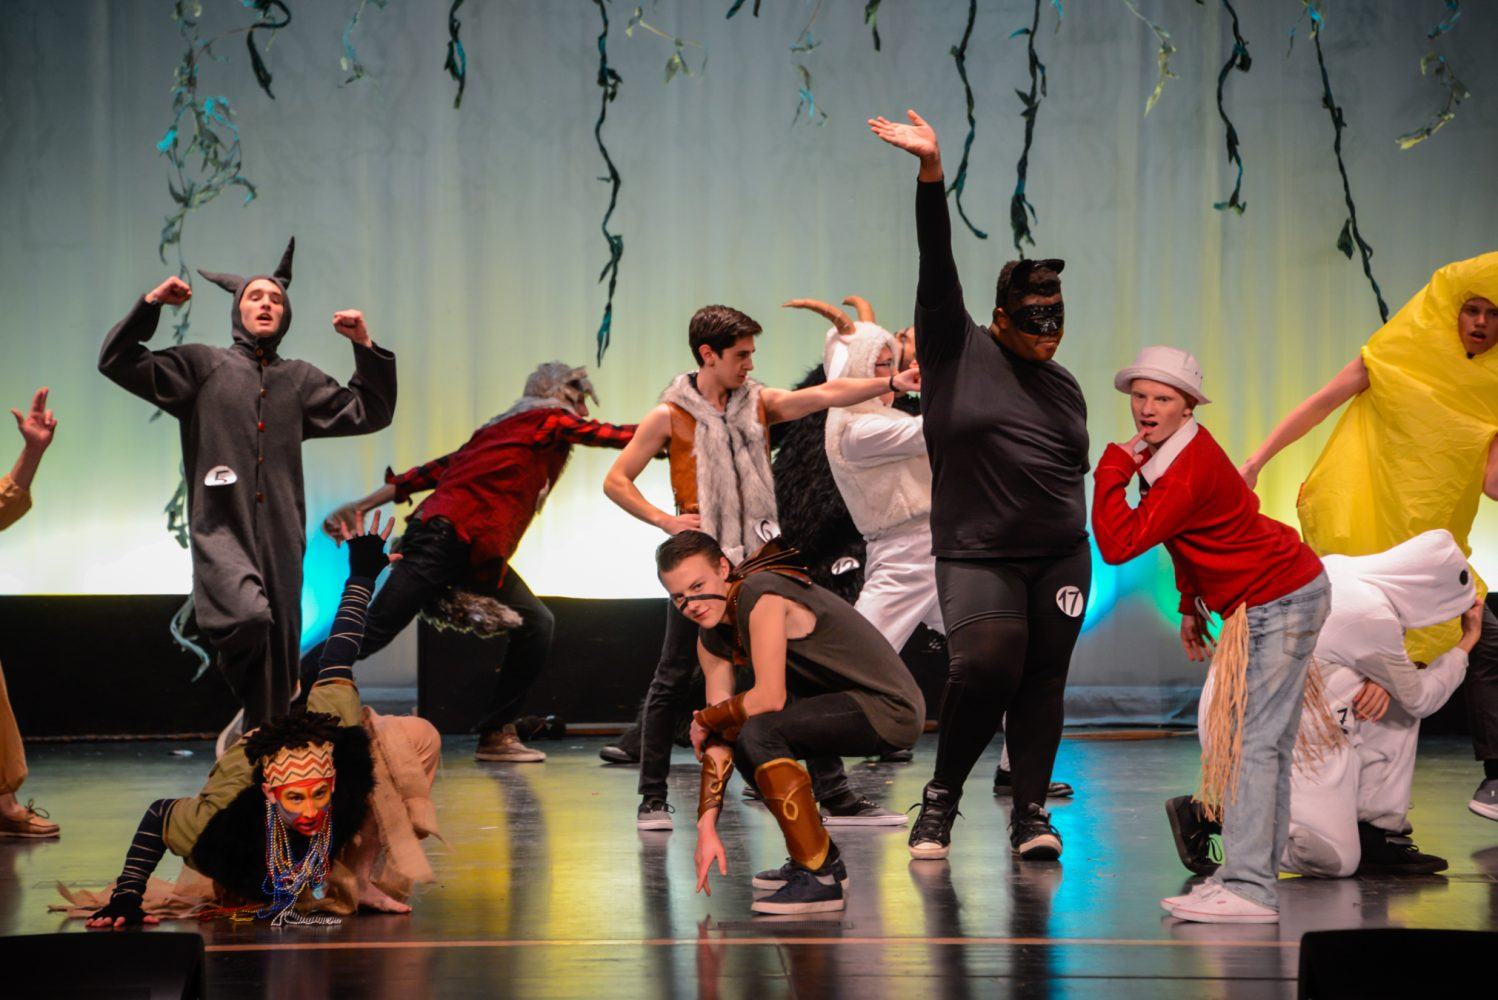 Mr.+Madsion+contestants+performing+in+their+opening+dance+number.+at+the+Mr.+Madison+Contest.+Photo+courtesy%3A+John+Tourcotte